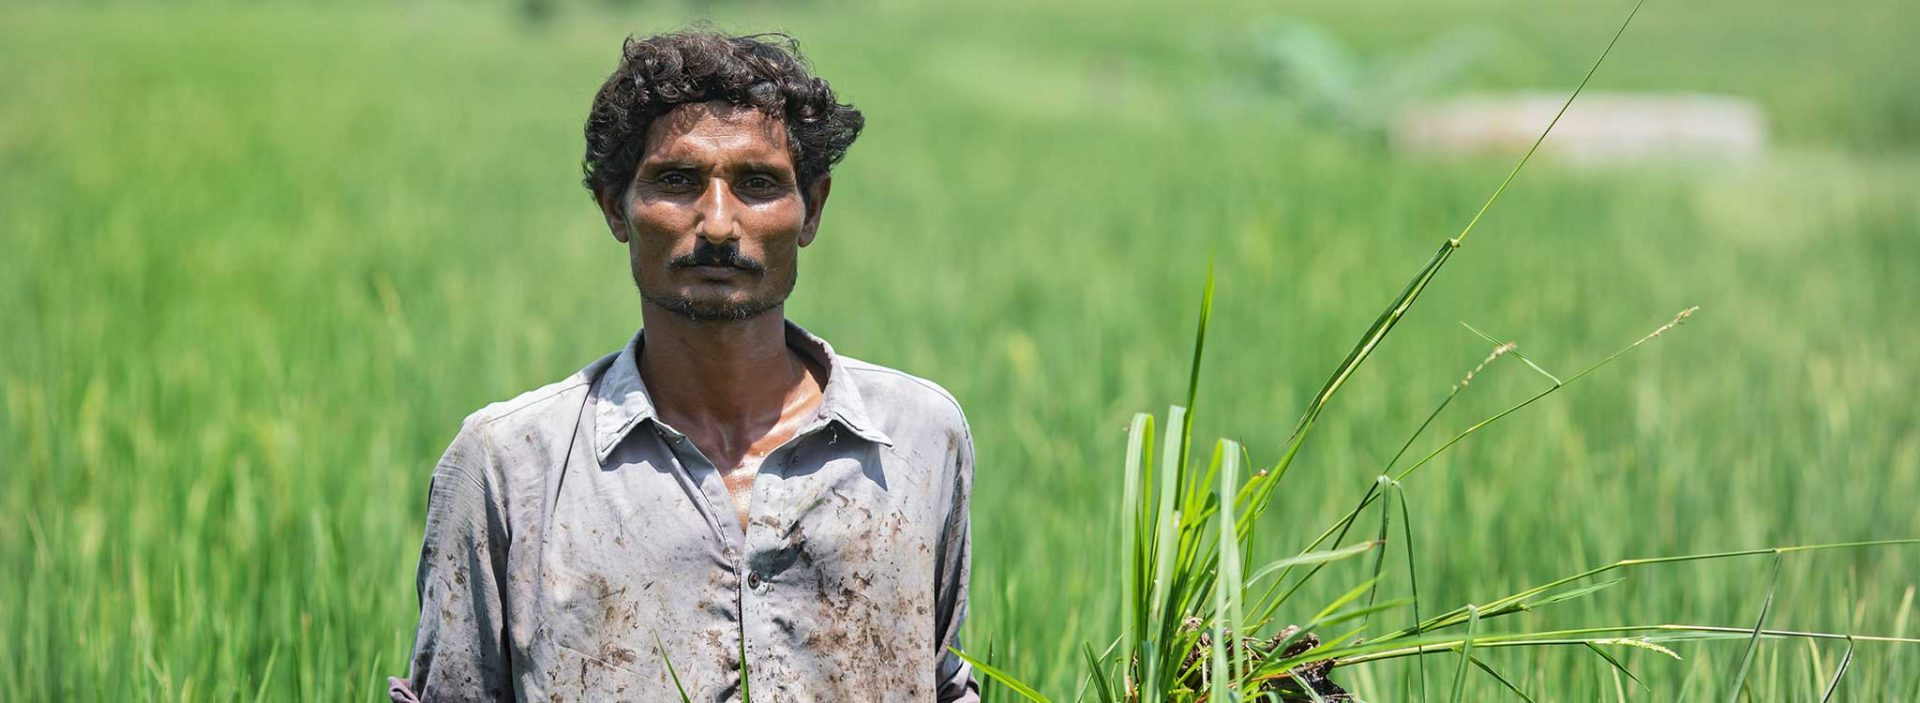 30-year-old Abdul received crop training from Action Against Hunger.